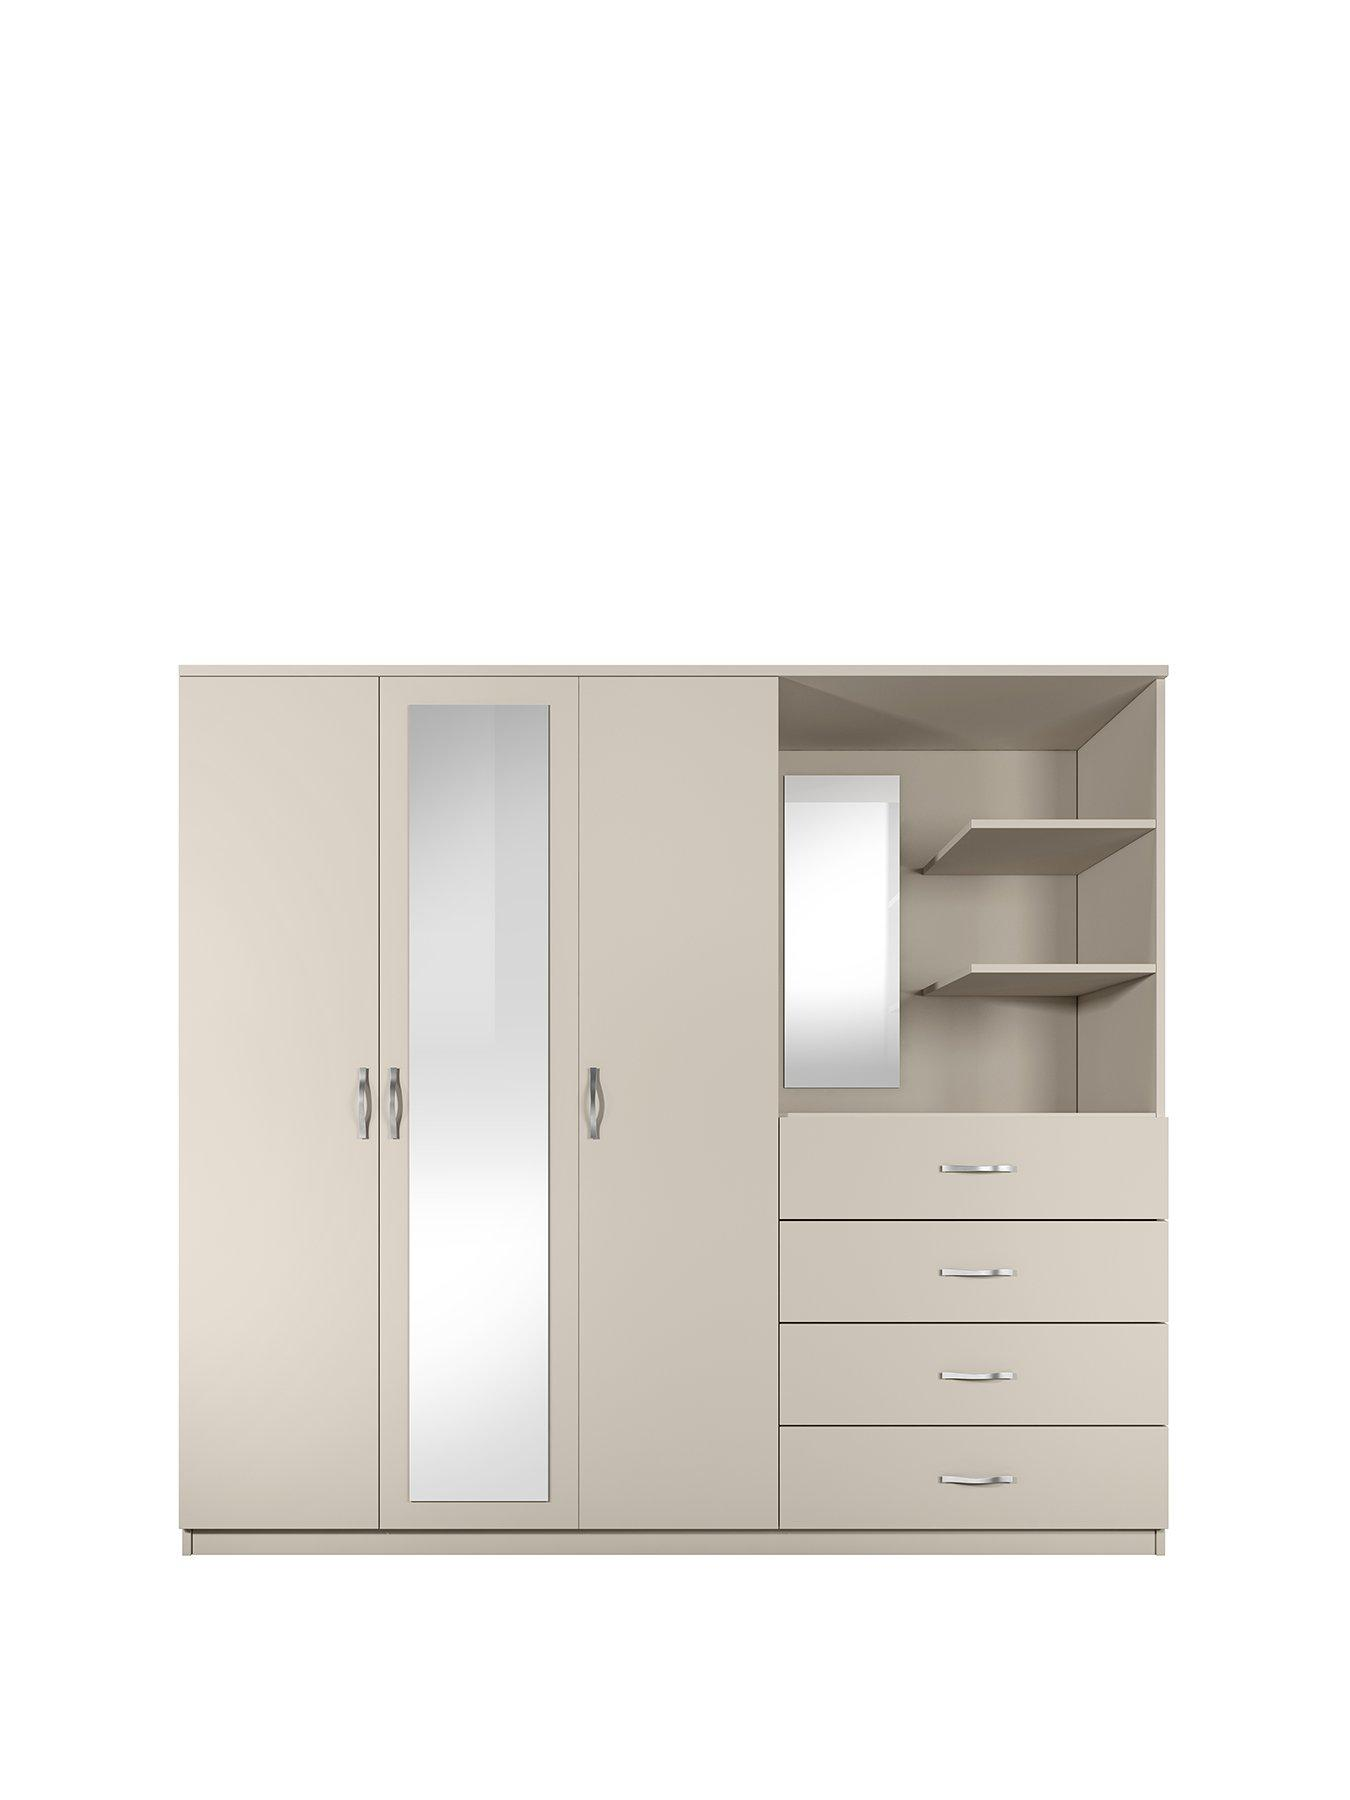 Home, Furniture & Diy 2 Door Double Wardrobe Mohogany Effect Furniture Bedroom Furniture Cupboard Moderate Price